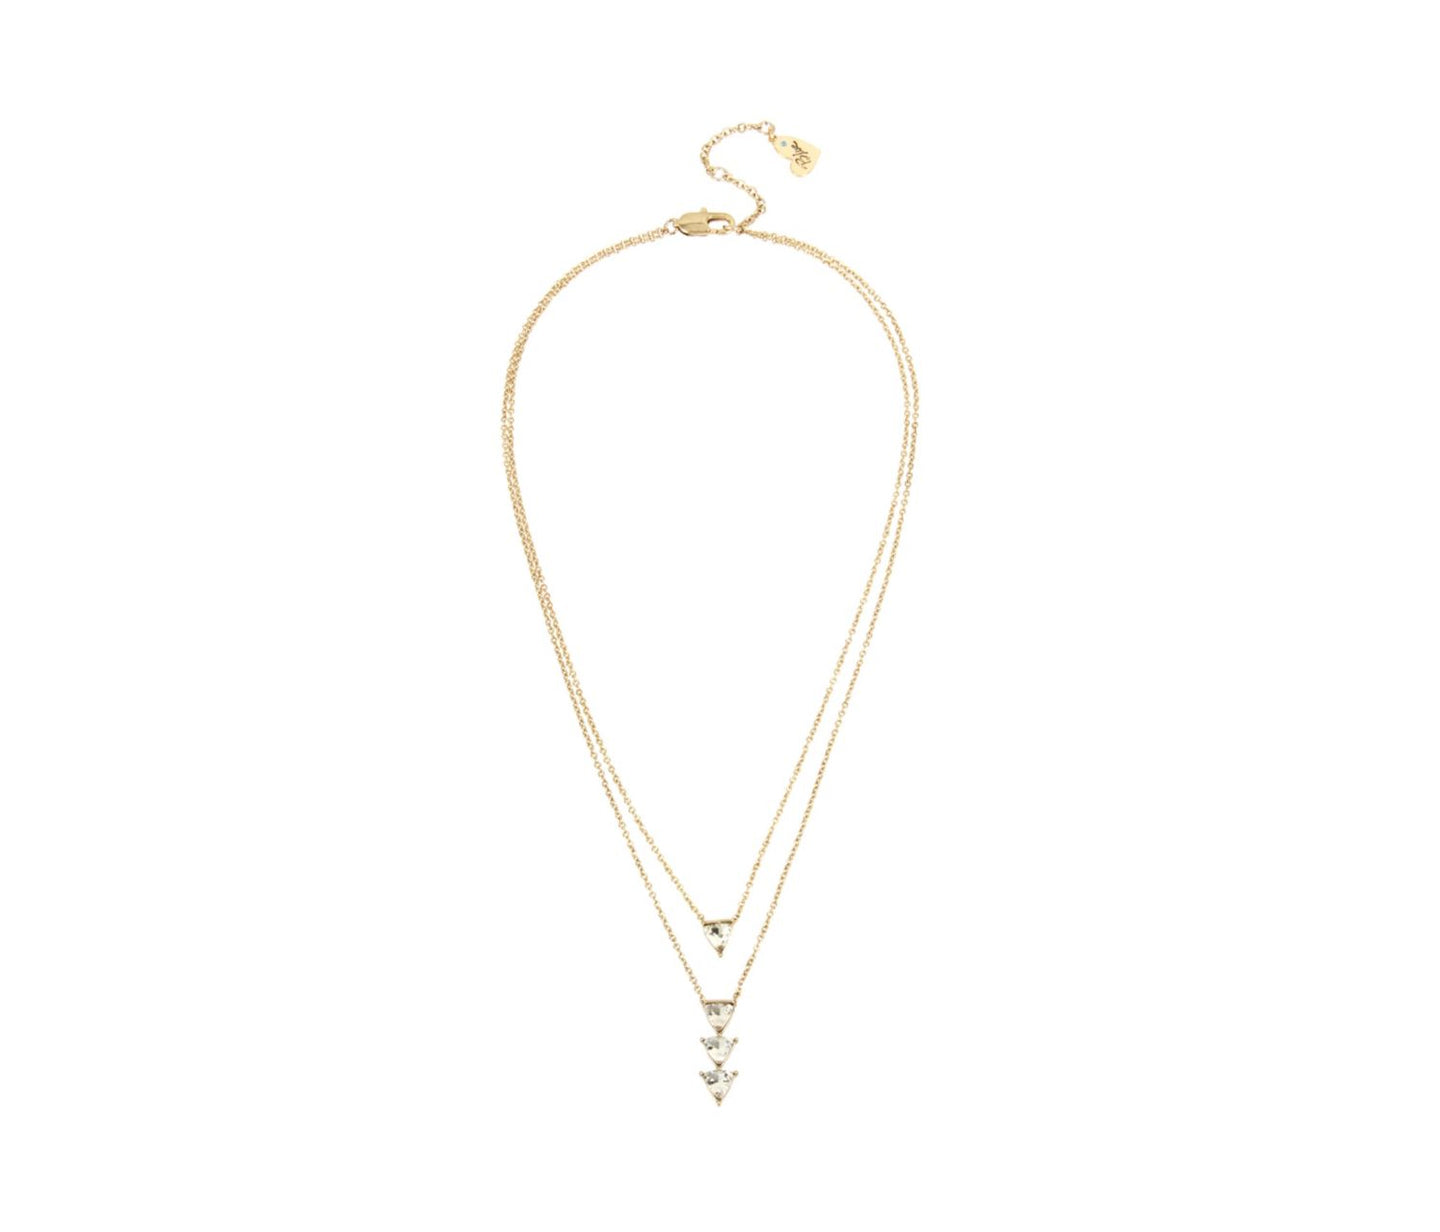 BETSEY BLUE LOVE LETTERS GOLD DOUBLE PENDANT GOLD - JEWELRY - Betsey Johnson